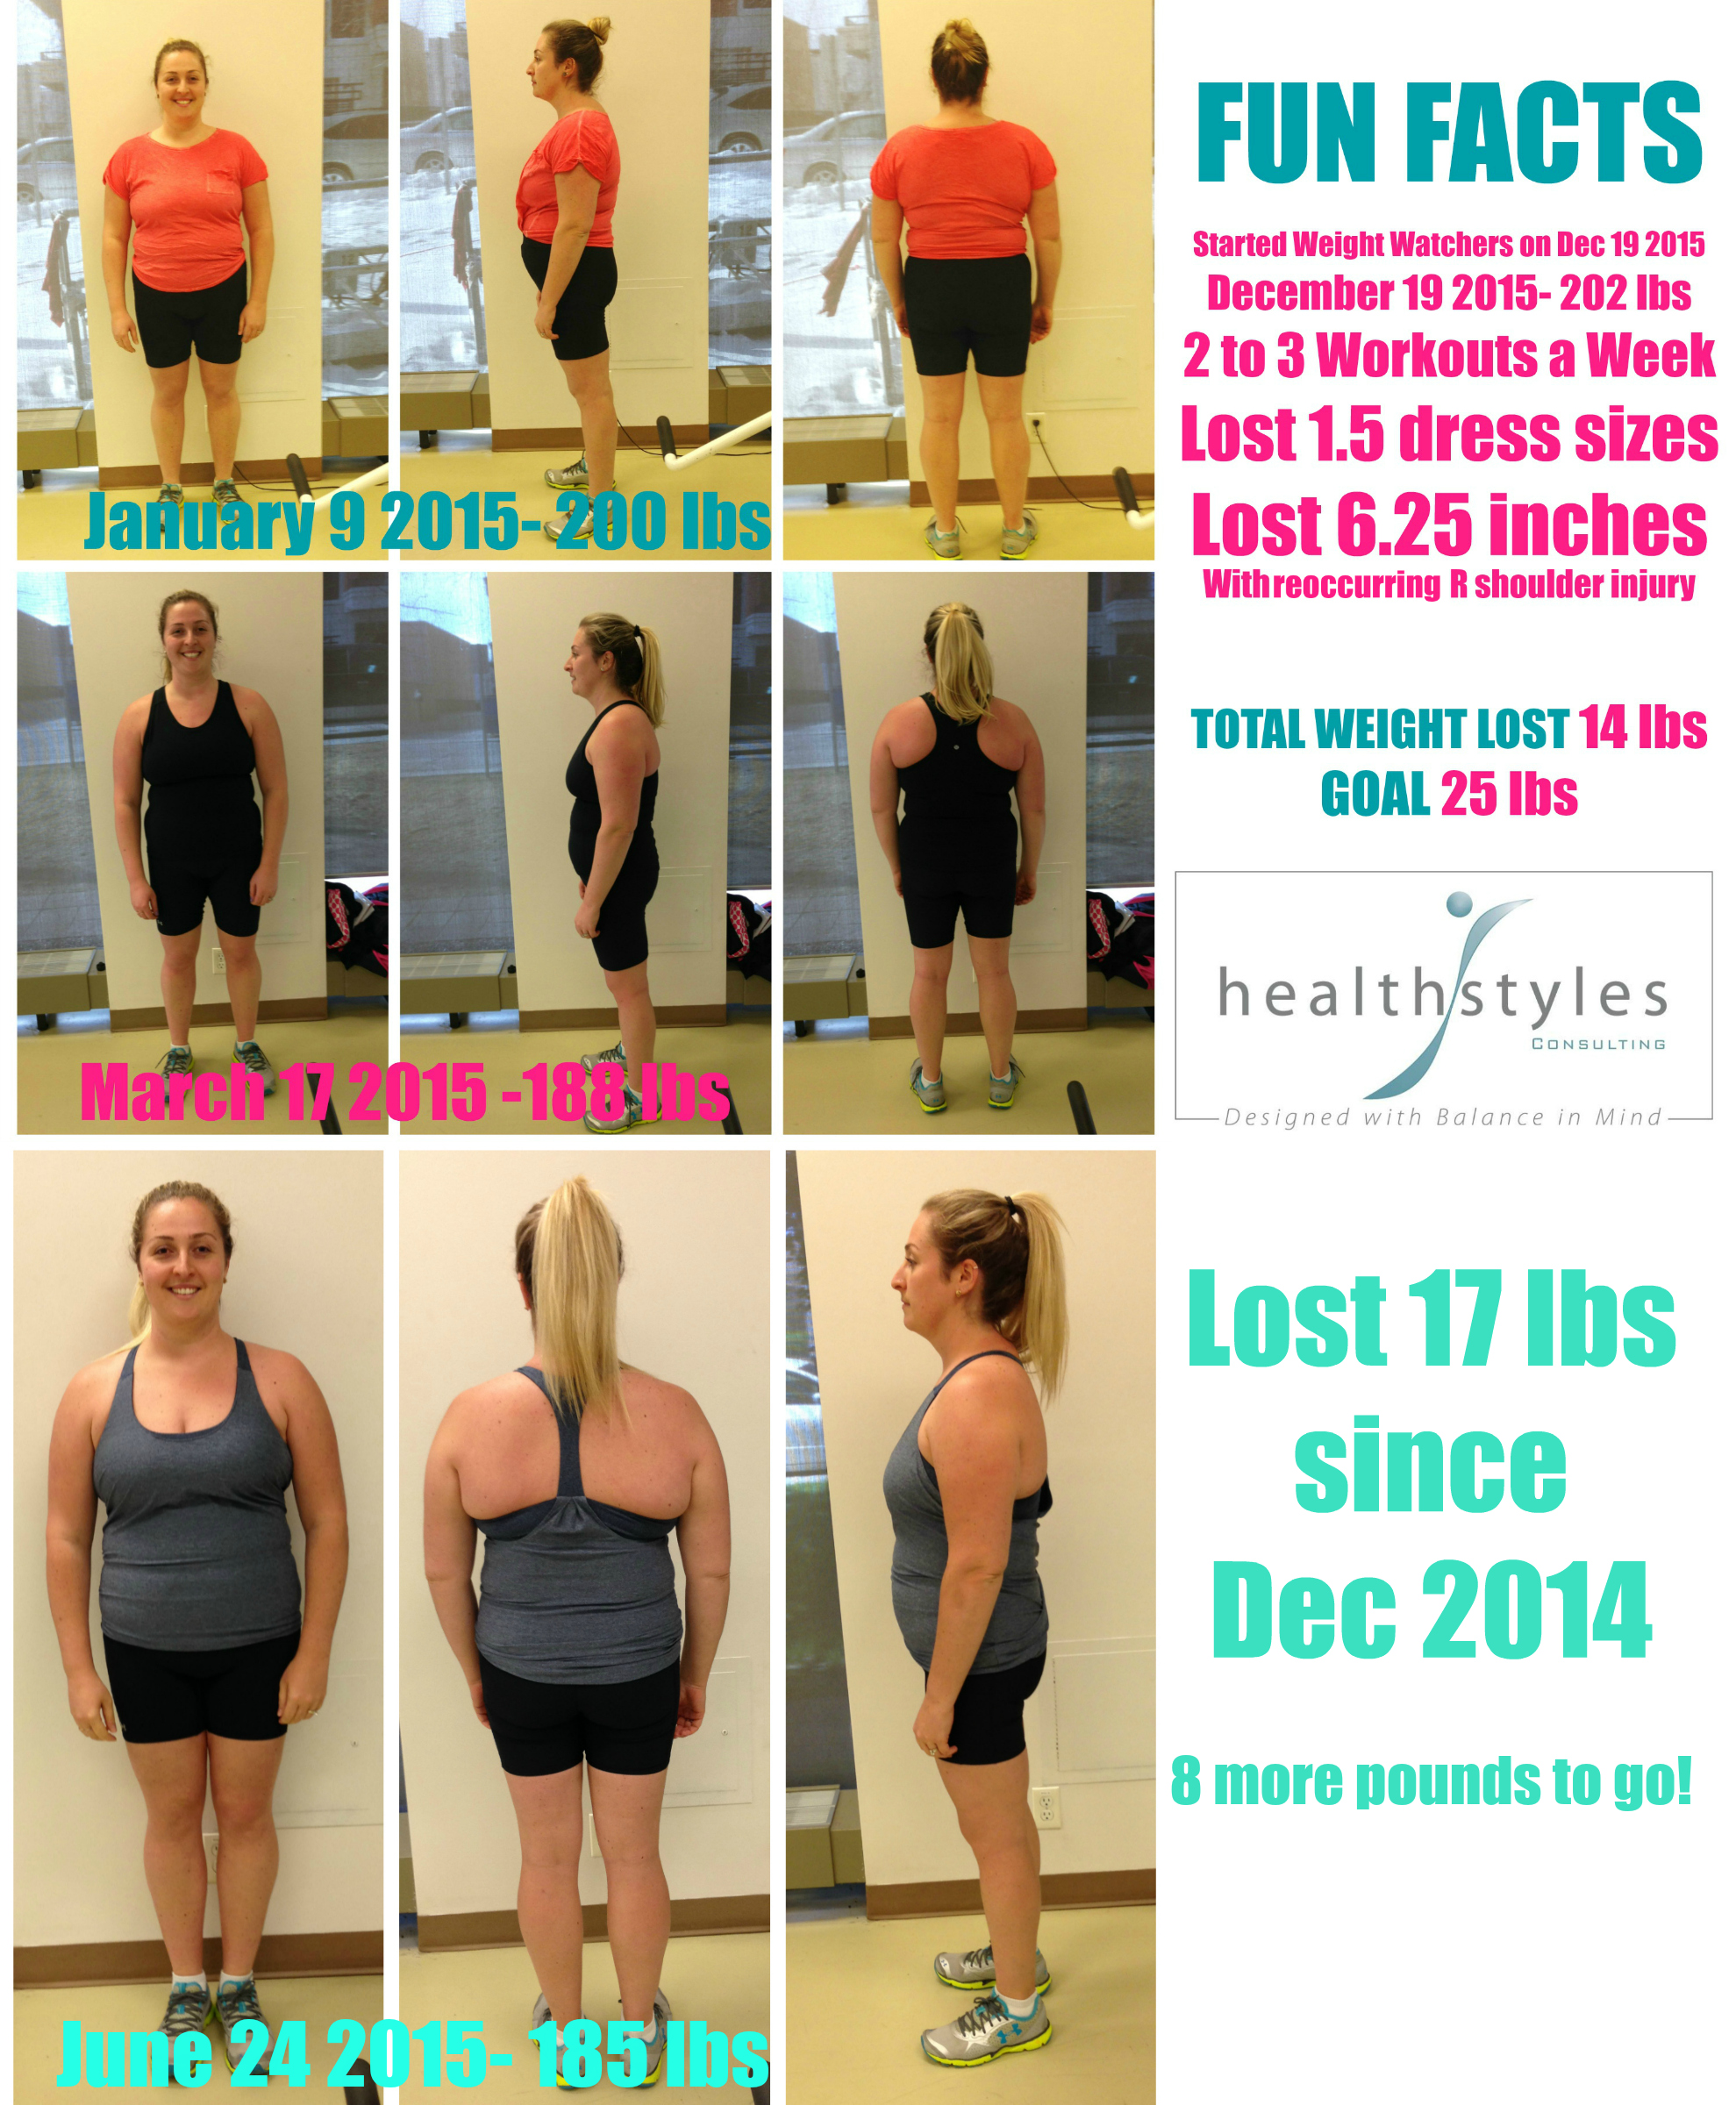 Transformation: My 6 Month Weigh-In • modexlusive